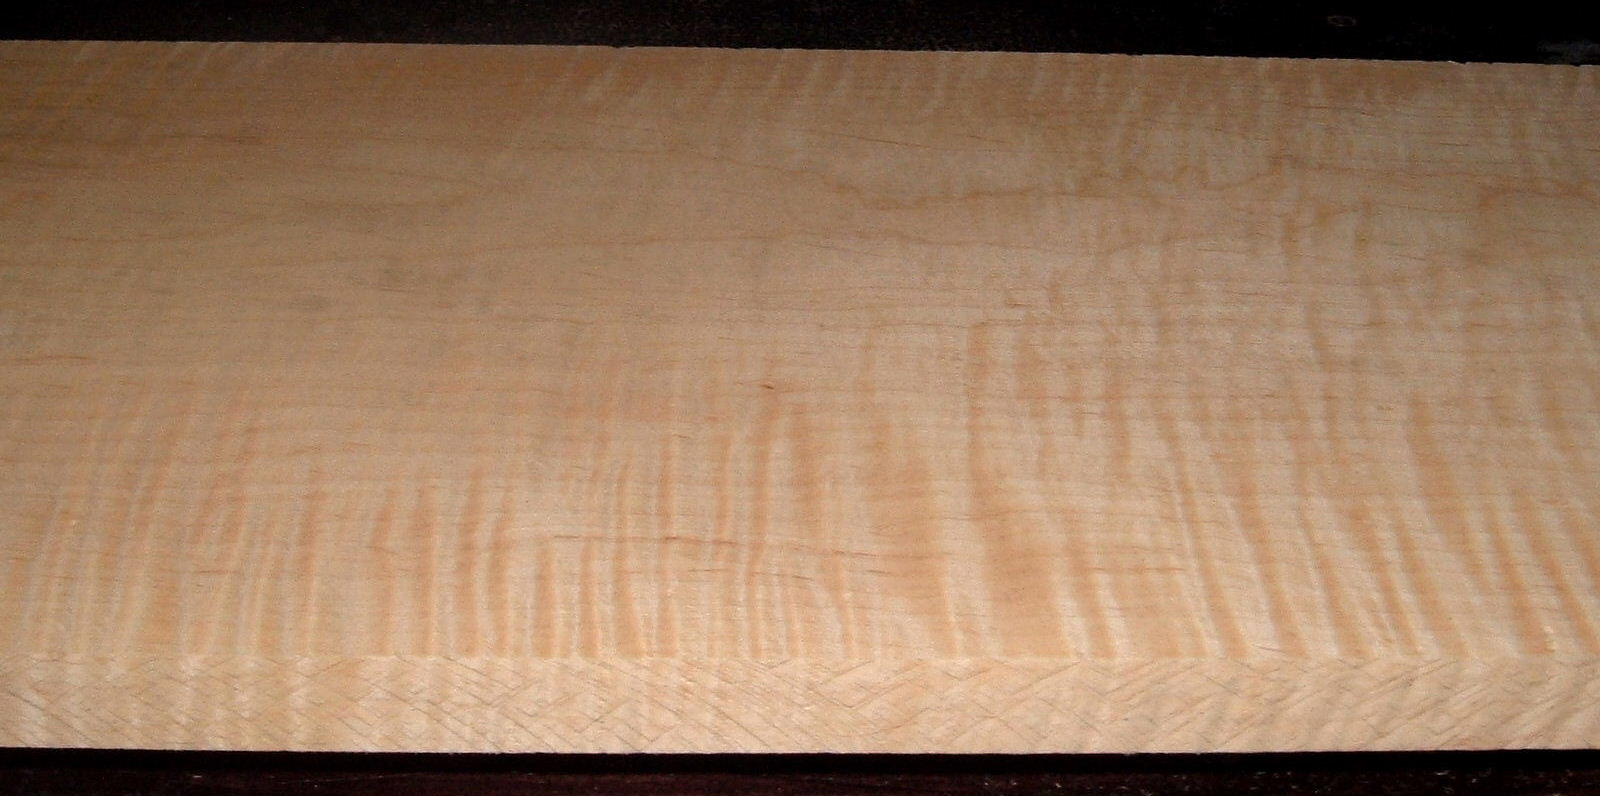 M2102-133,1-1/16x11-3/8x53, Curly Tiger Maple